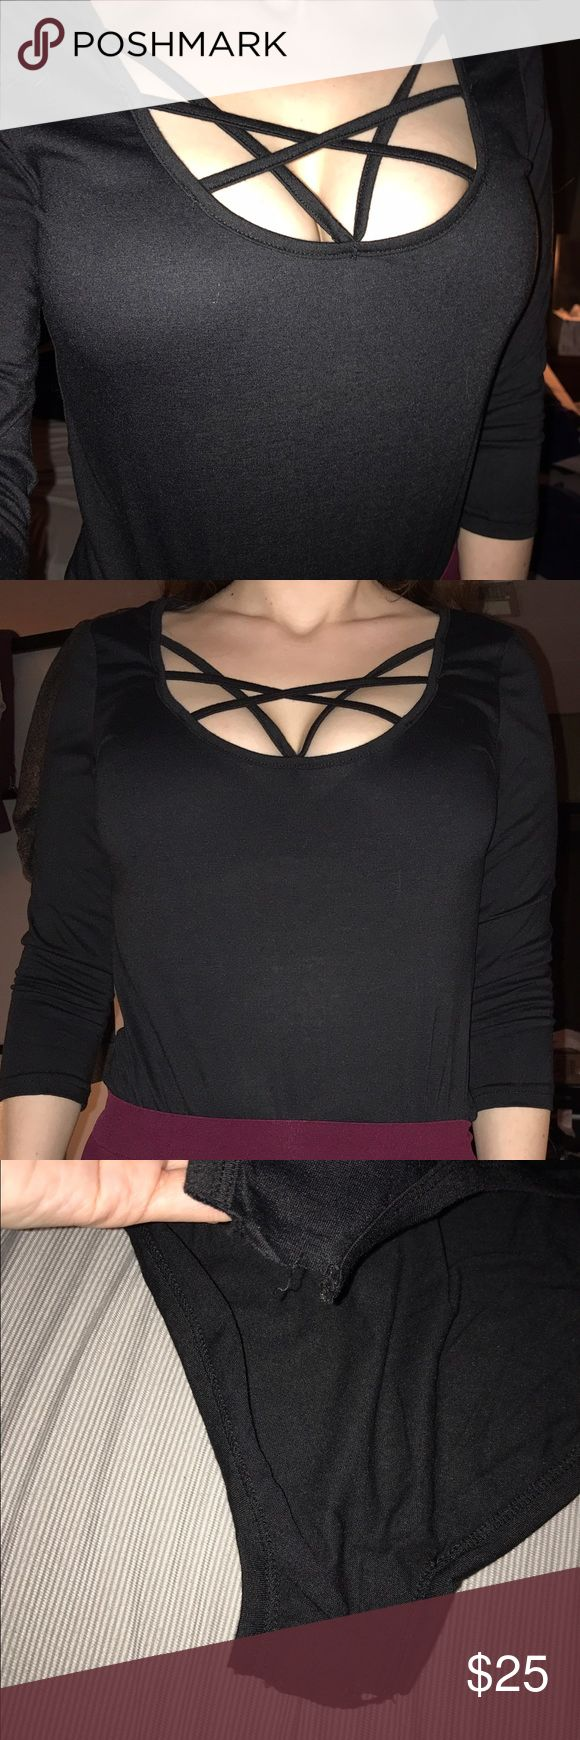 Black bodysuit Shirt Cut at crotch because it was too short for me but I got another similar one and never wore this one. Can still be tucked into pants or sewn back together if you are like 5'2 and under. Tops Tees - Long Sleeve